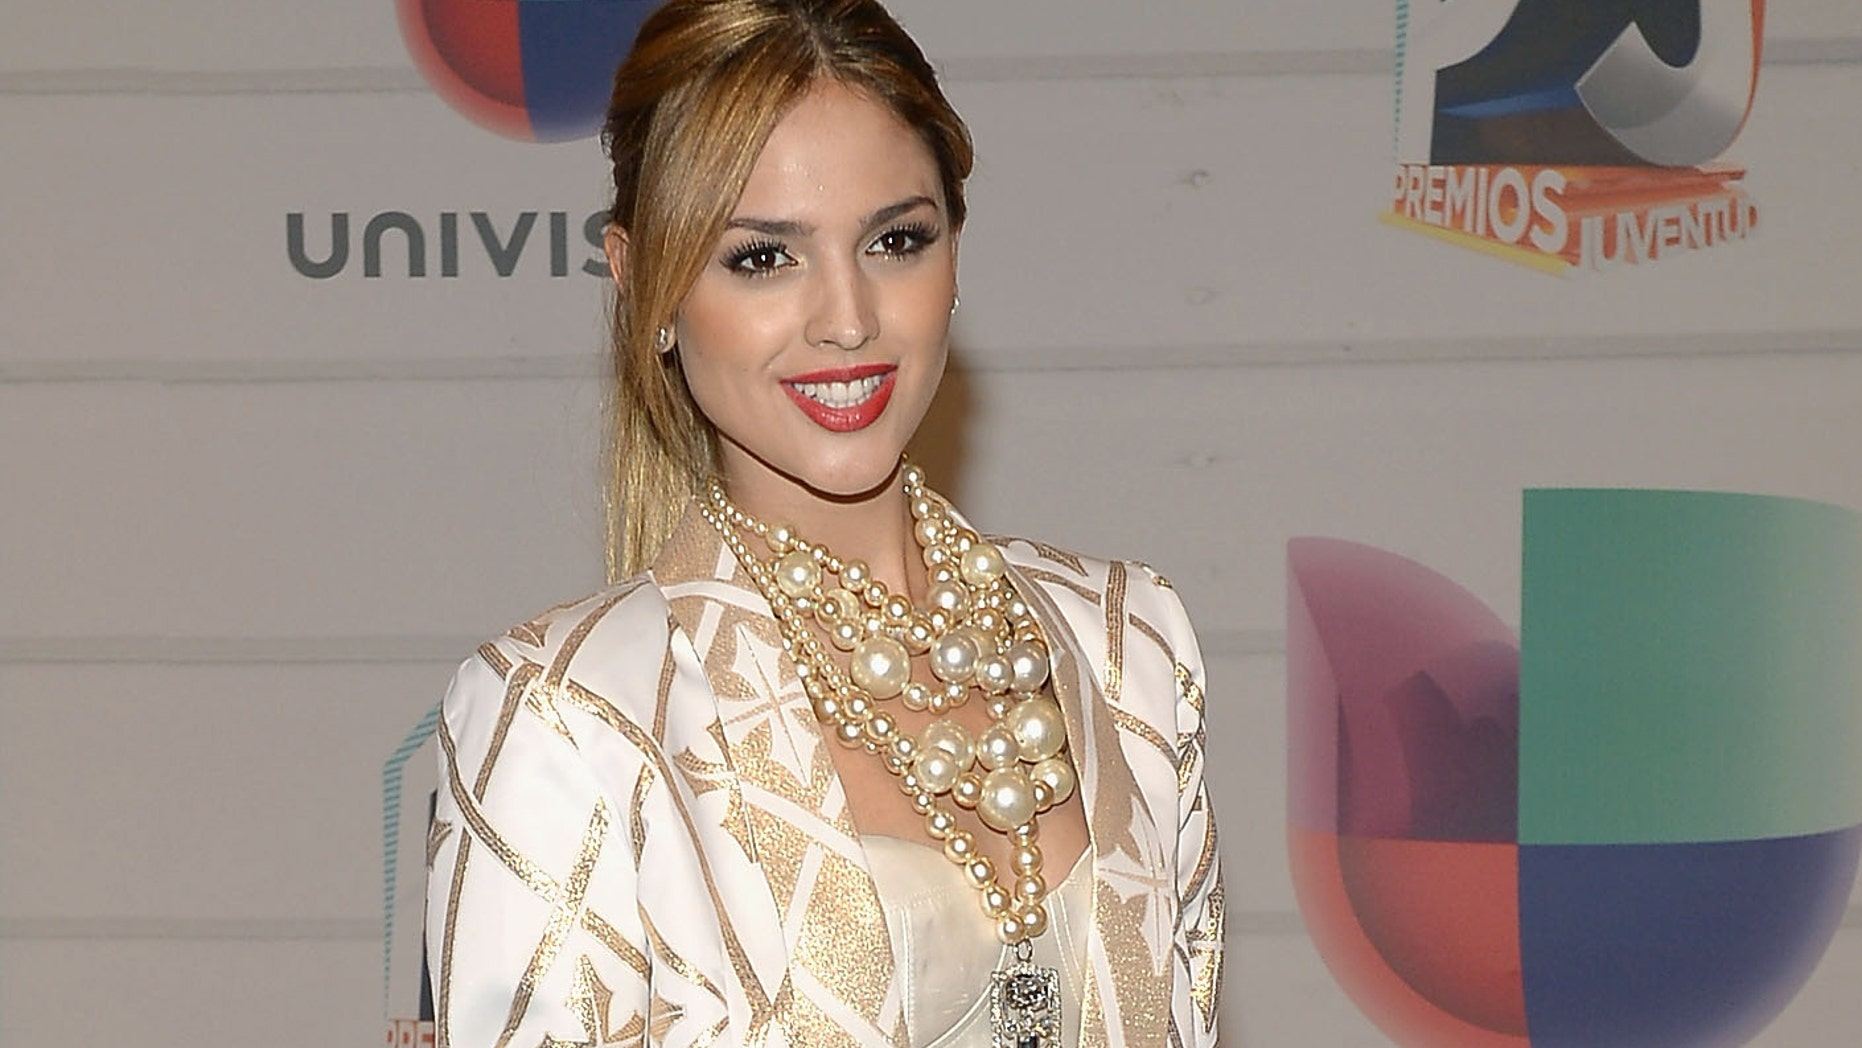 MIAMI, FL - JULY 18:  Actress Eiza Gonzalez attends the Premios Juventud 2013 at Bank United Center on July 18, 2013 in Miami, Florida.  (Photo by Gustavo Caballero/Getty Images for Univision)